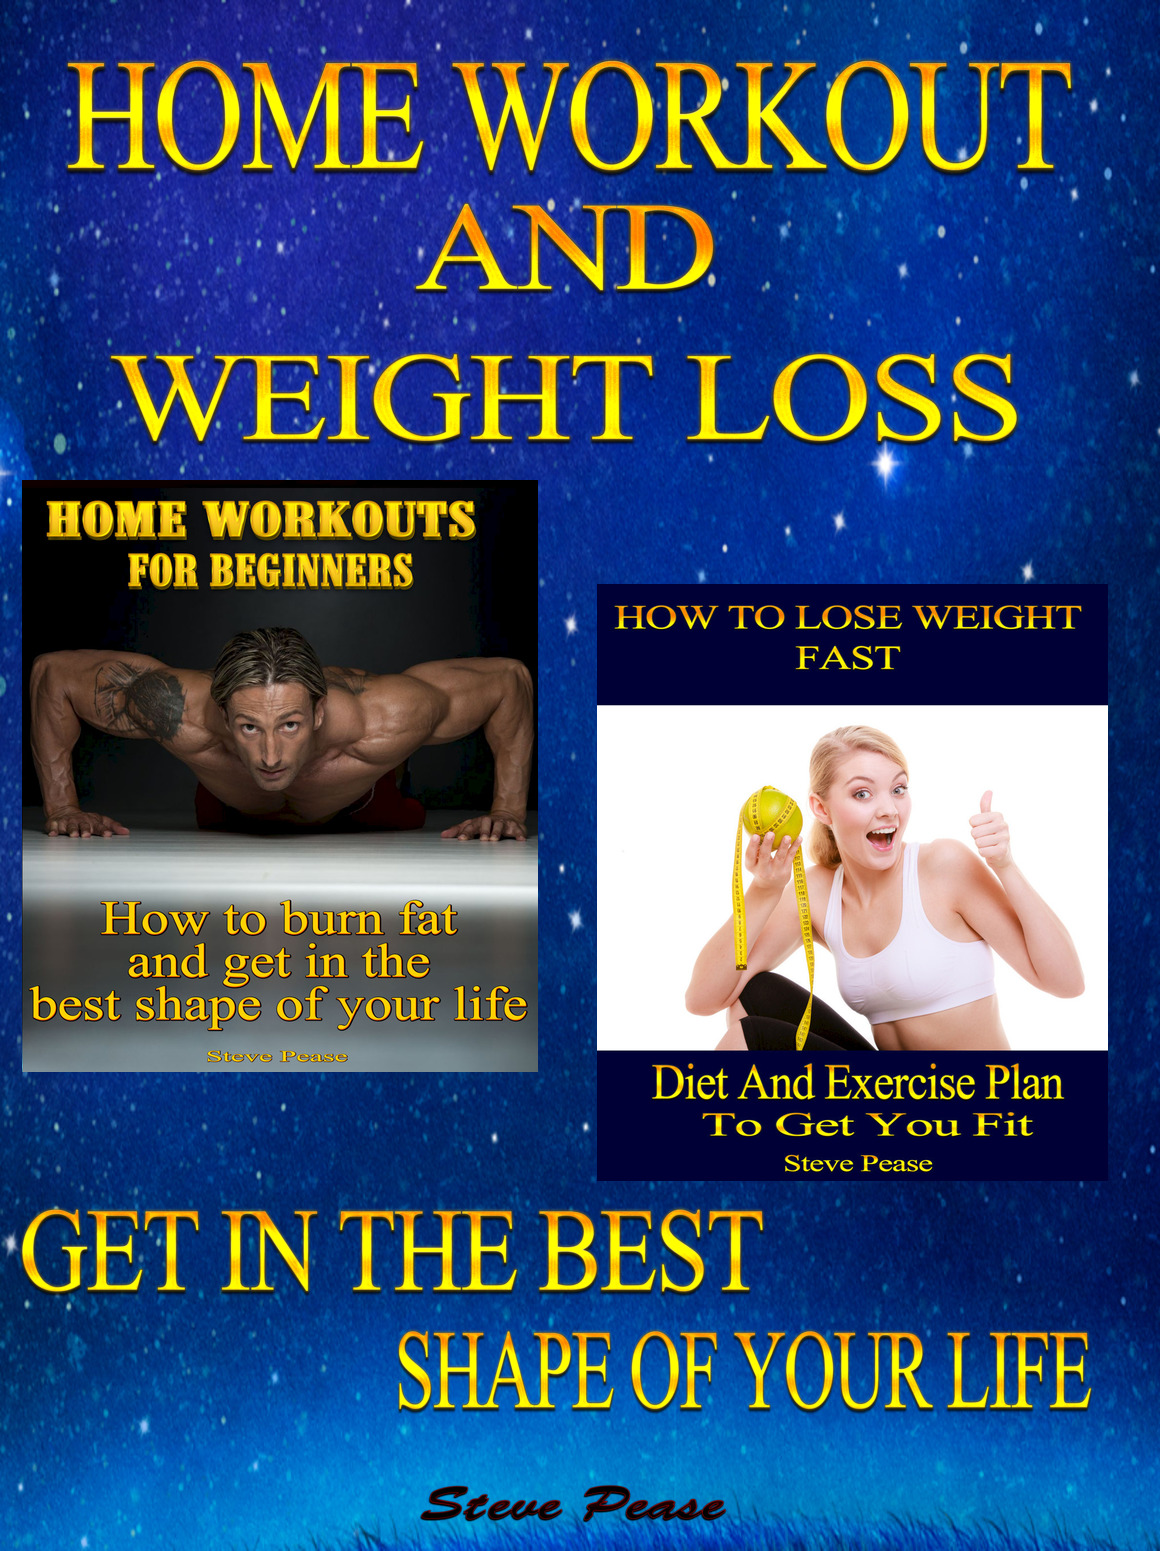 WORKOUT AND LOSE WEIGHT